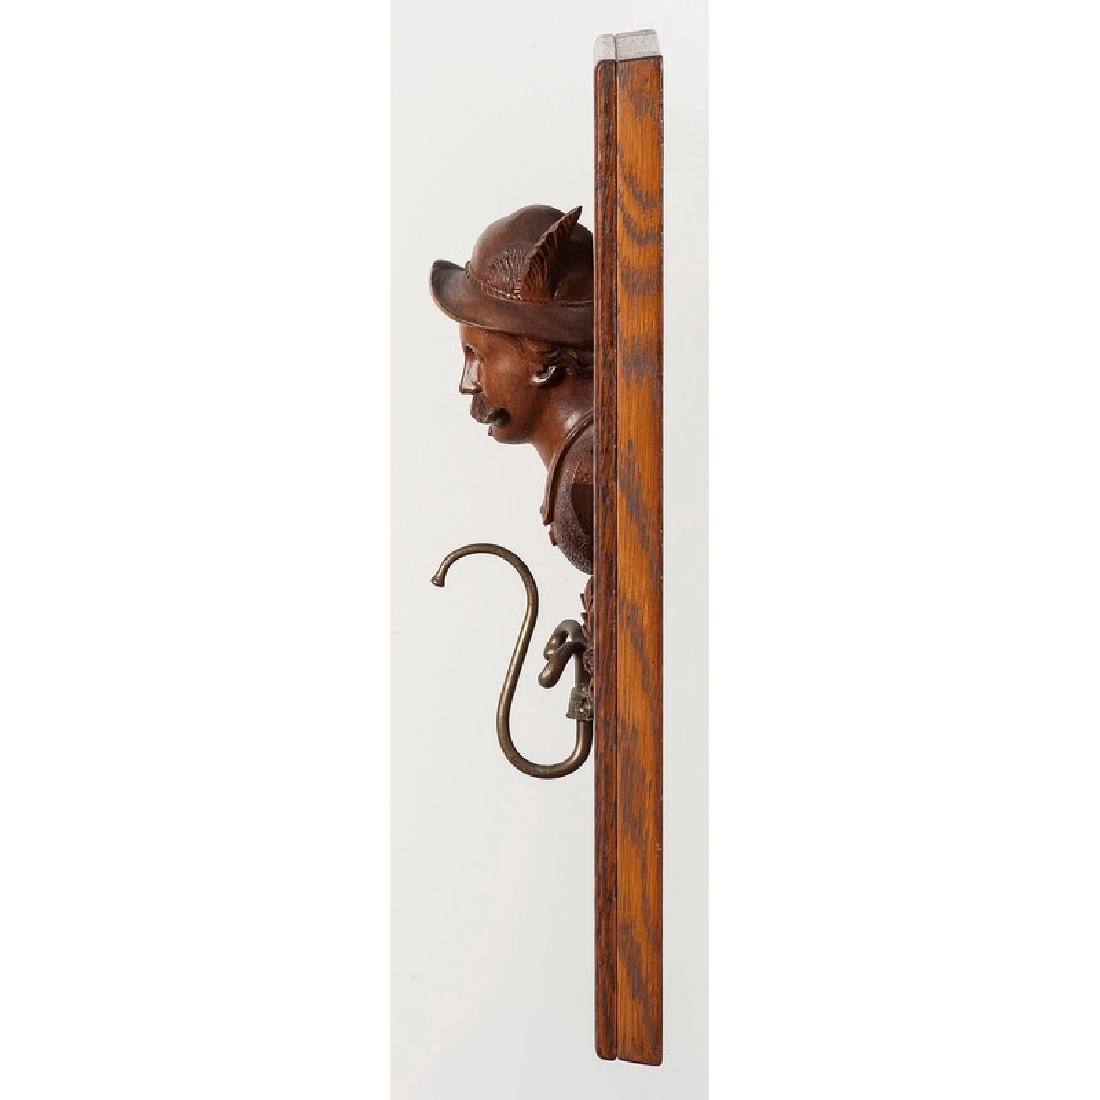 Black Forest Carved Coat Rack - 2